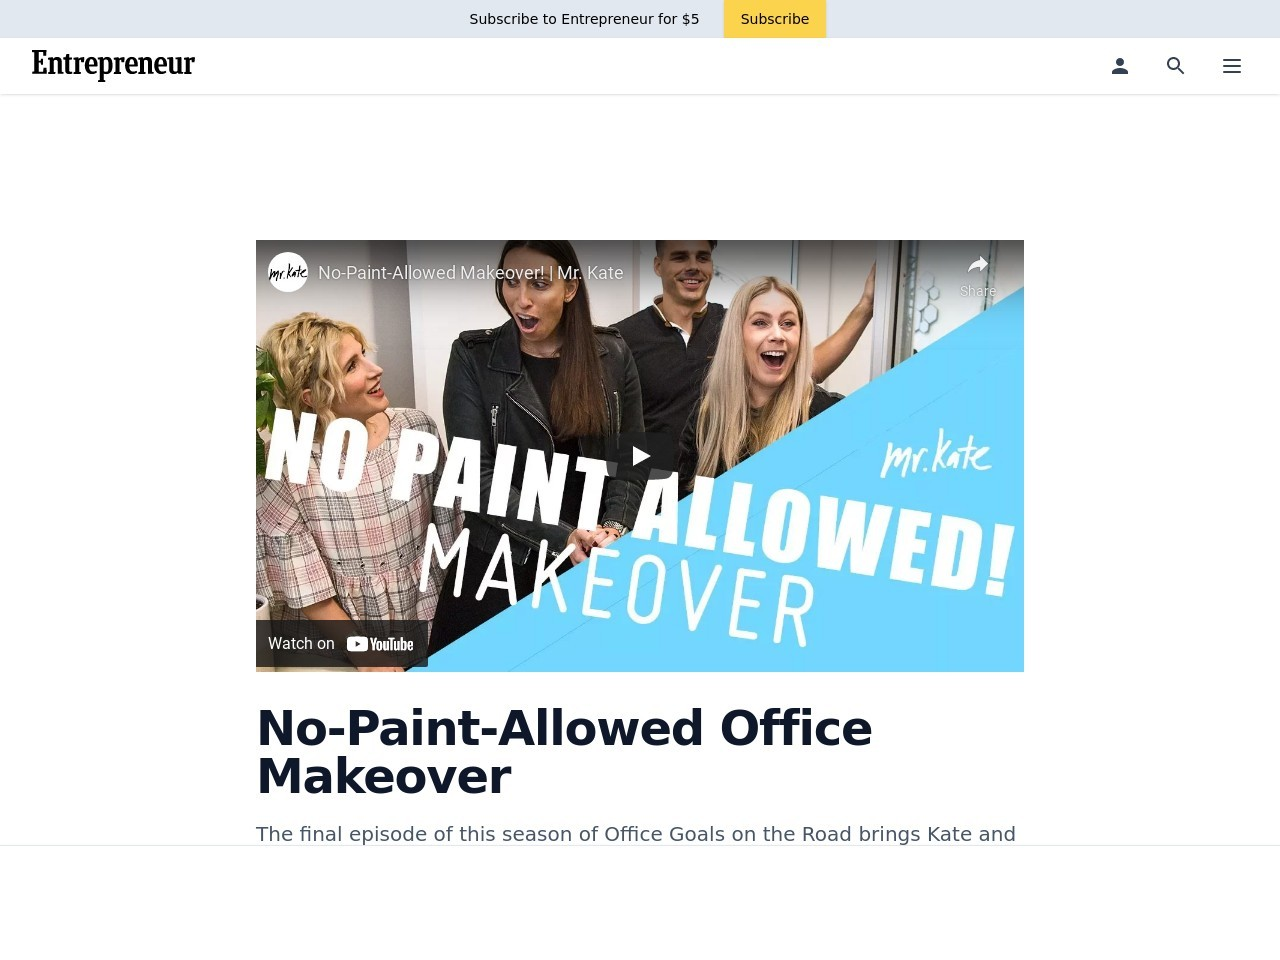 No-Paint-Allowed Office Makeover